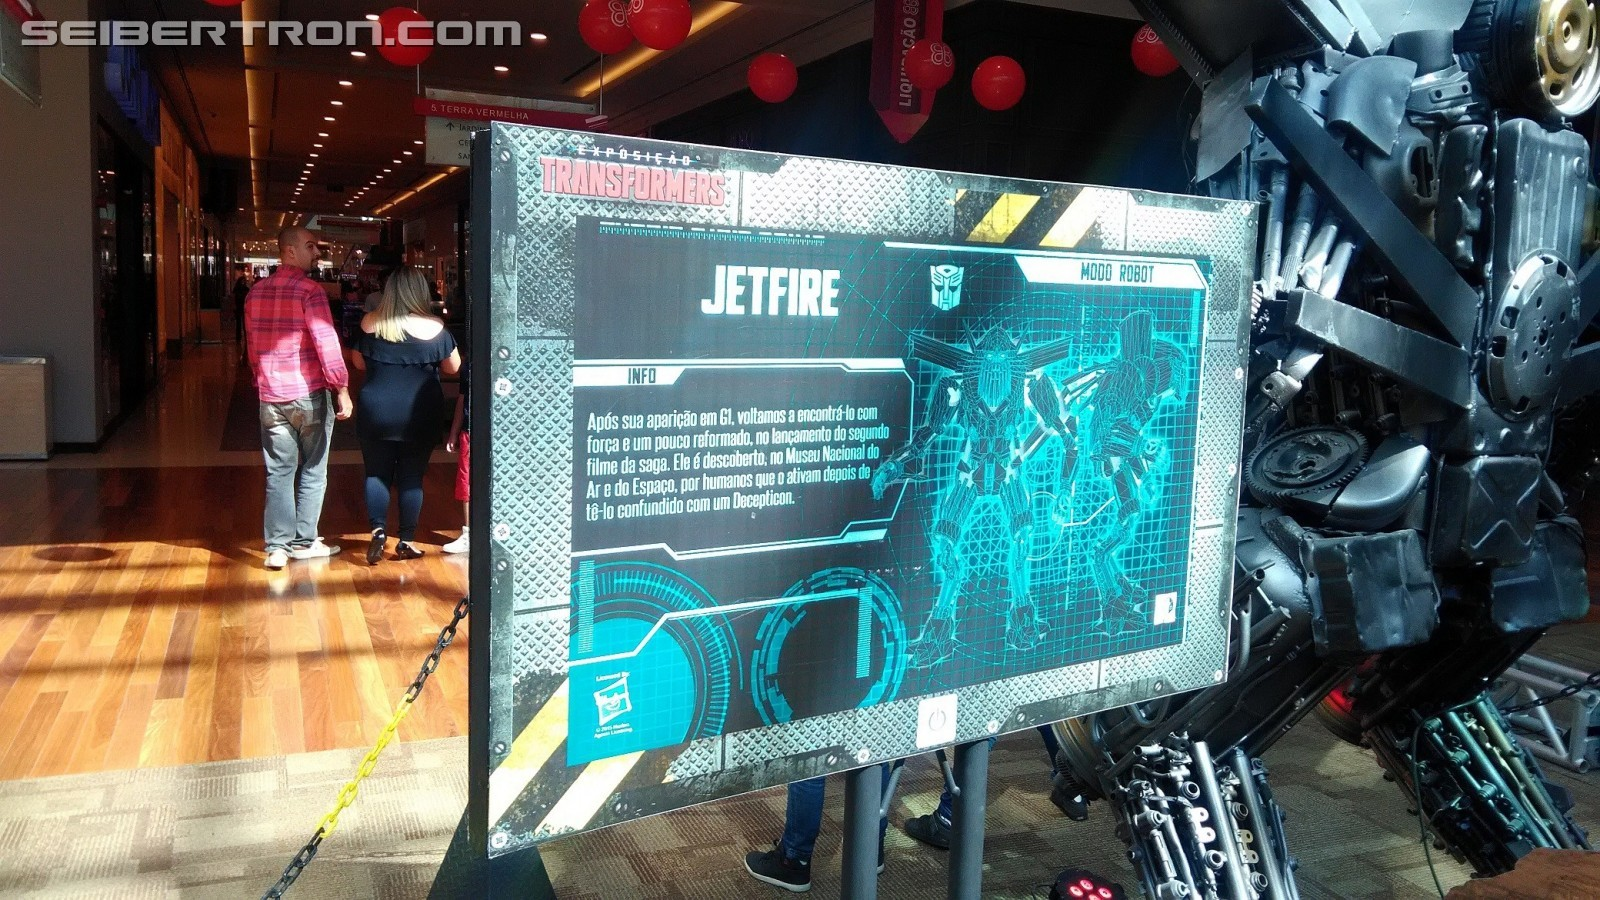 Transformers News: Images and Videos from Transformers: The Last Knight Animatronics Exhibition in Brazil